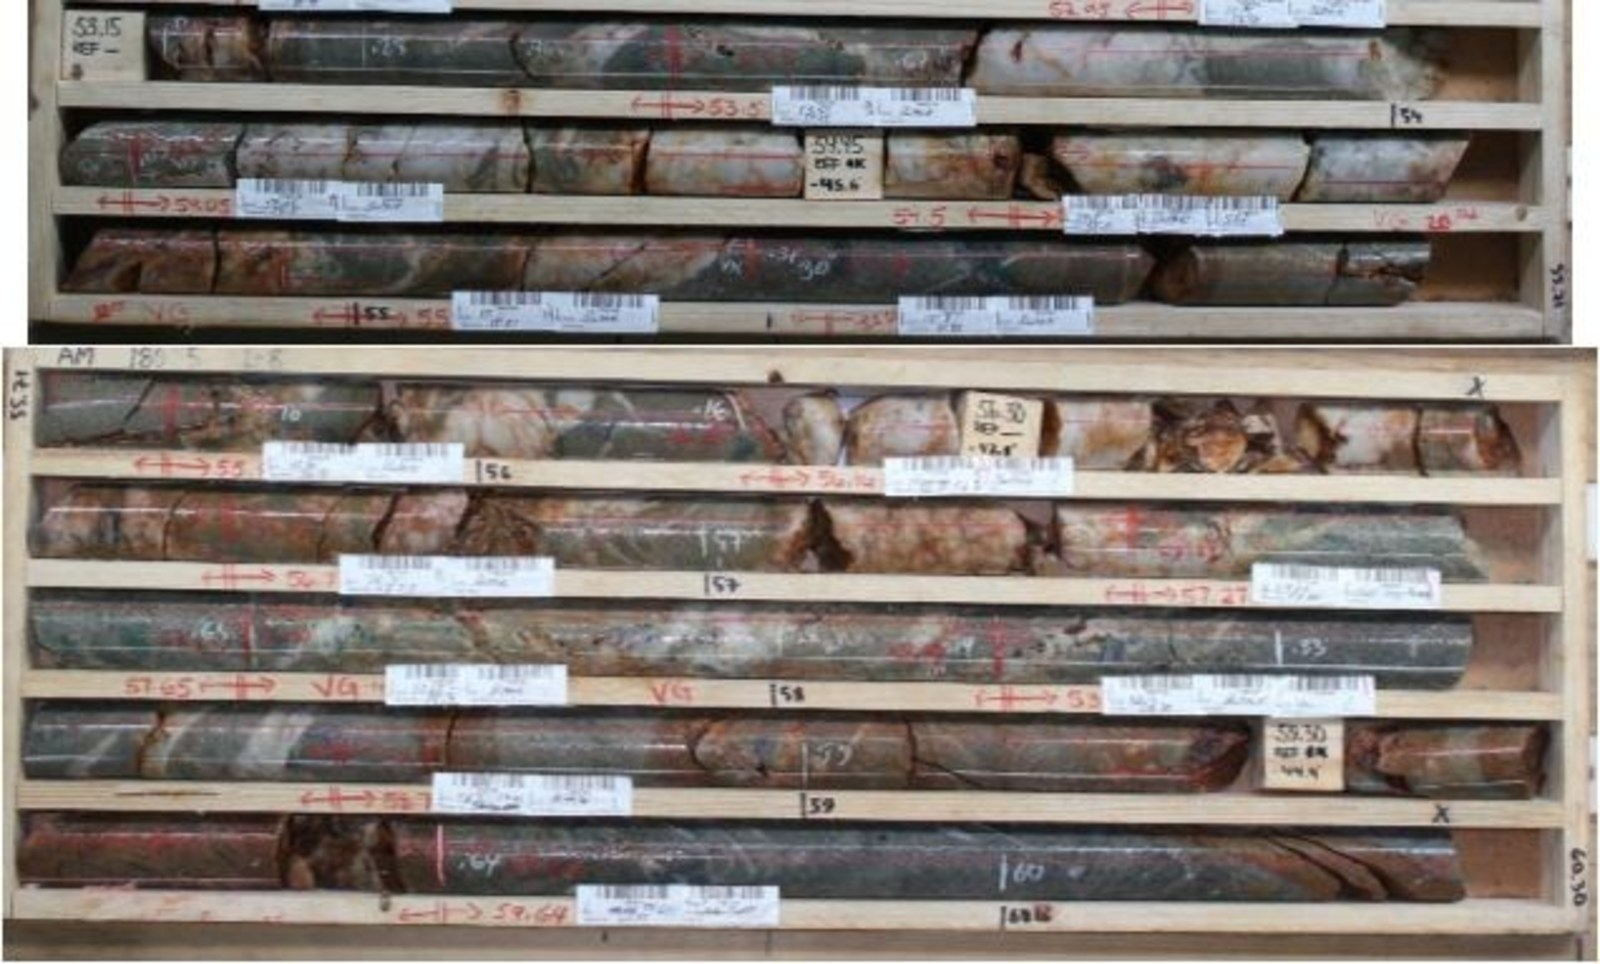 Aamurusko Main; Drillhole AM18035.  12.45 g/t Au over 5.2 m from 53.5 to 58.7 m